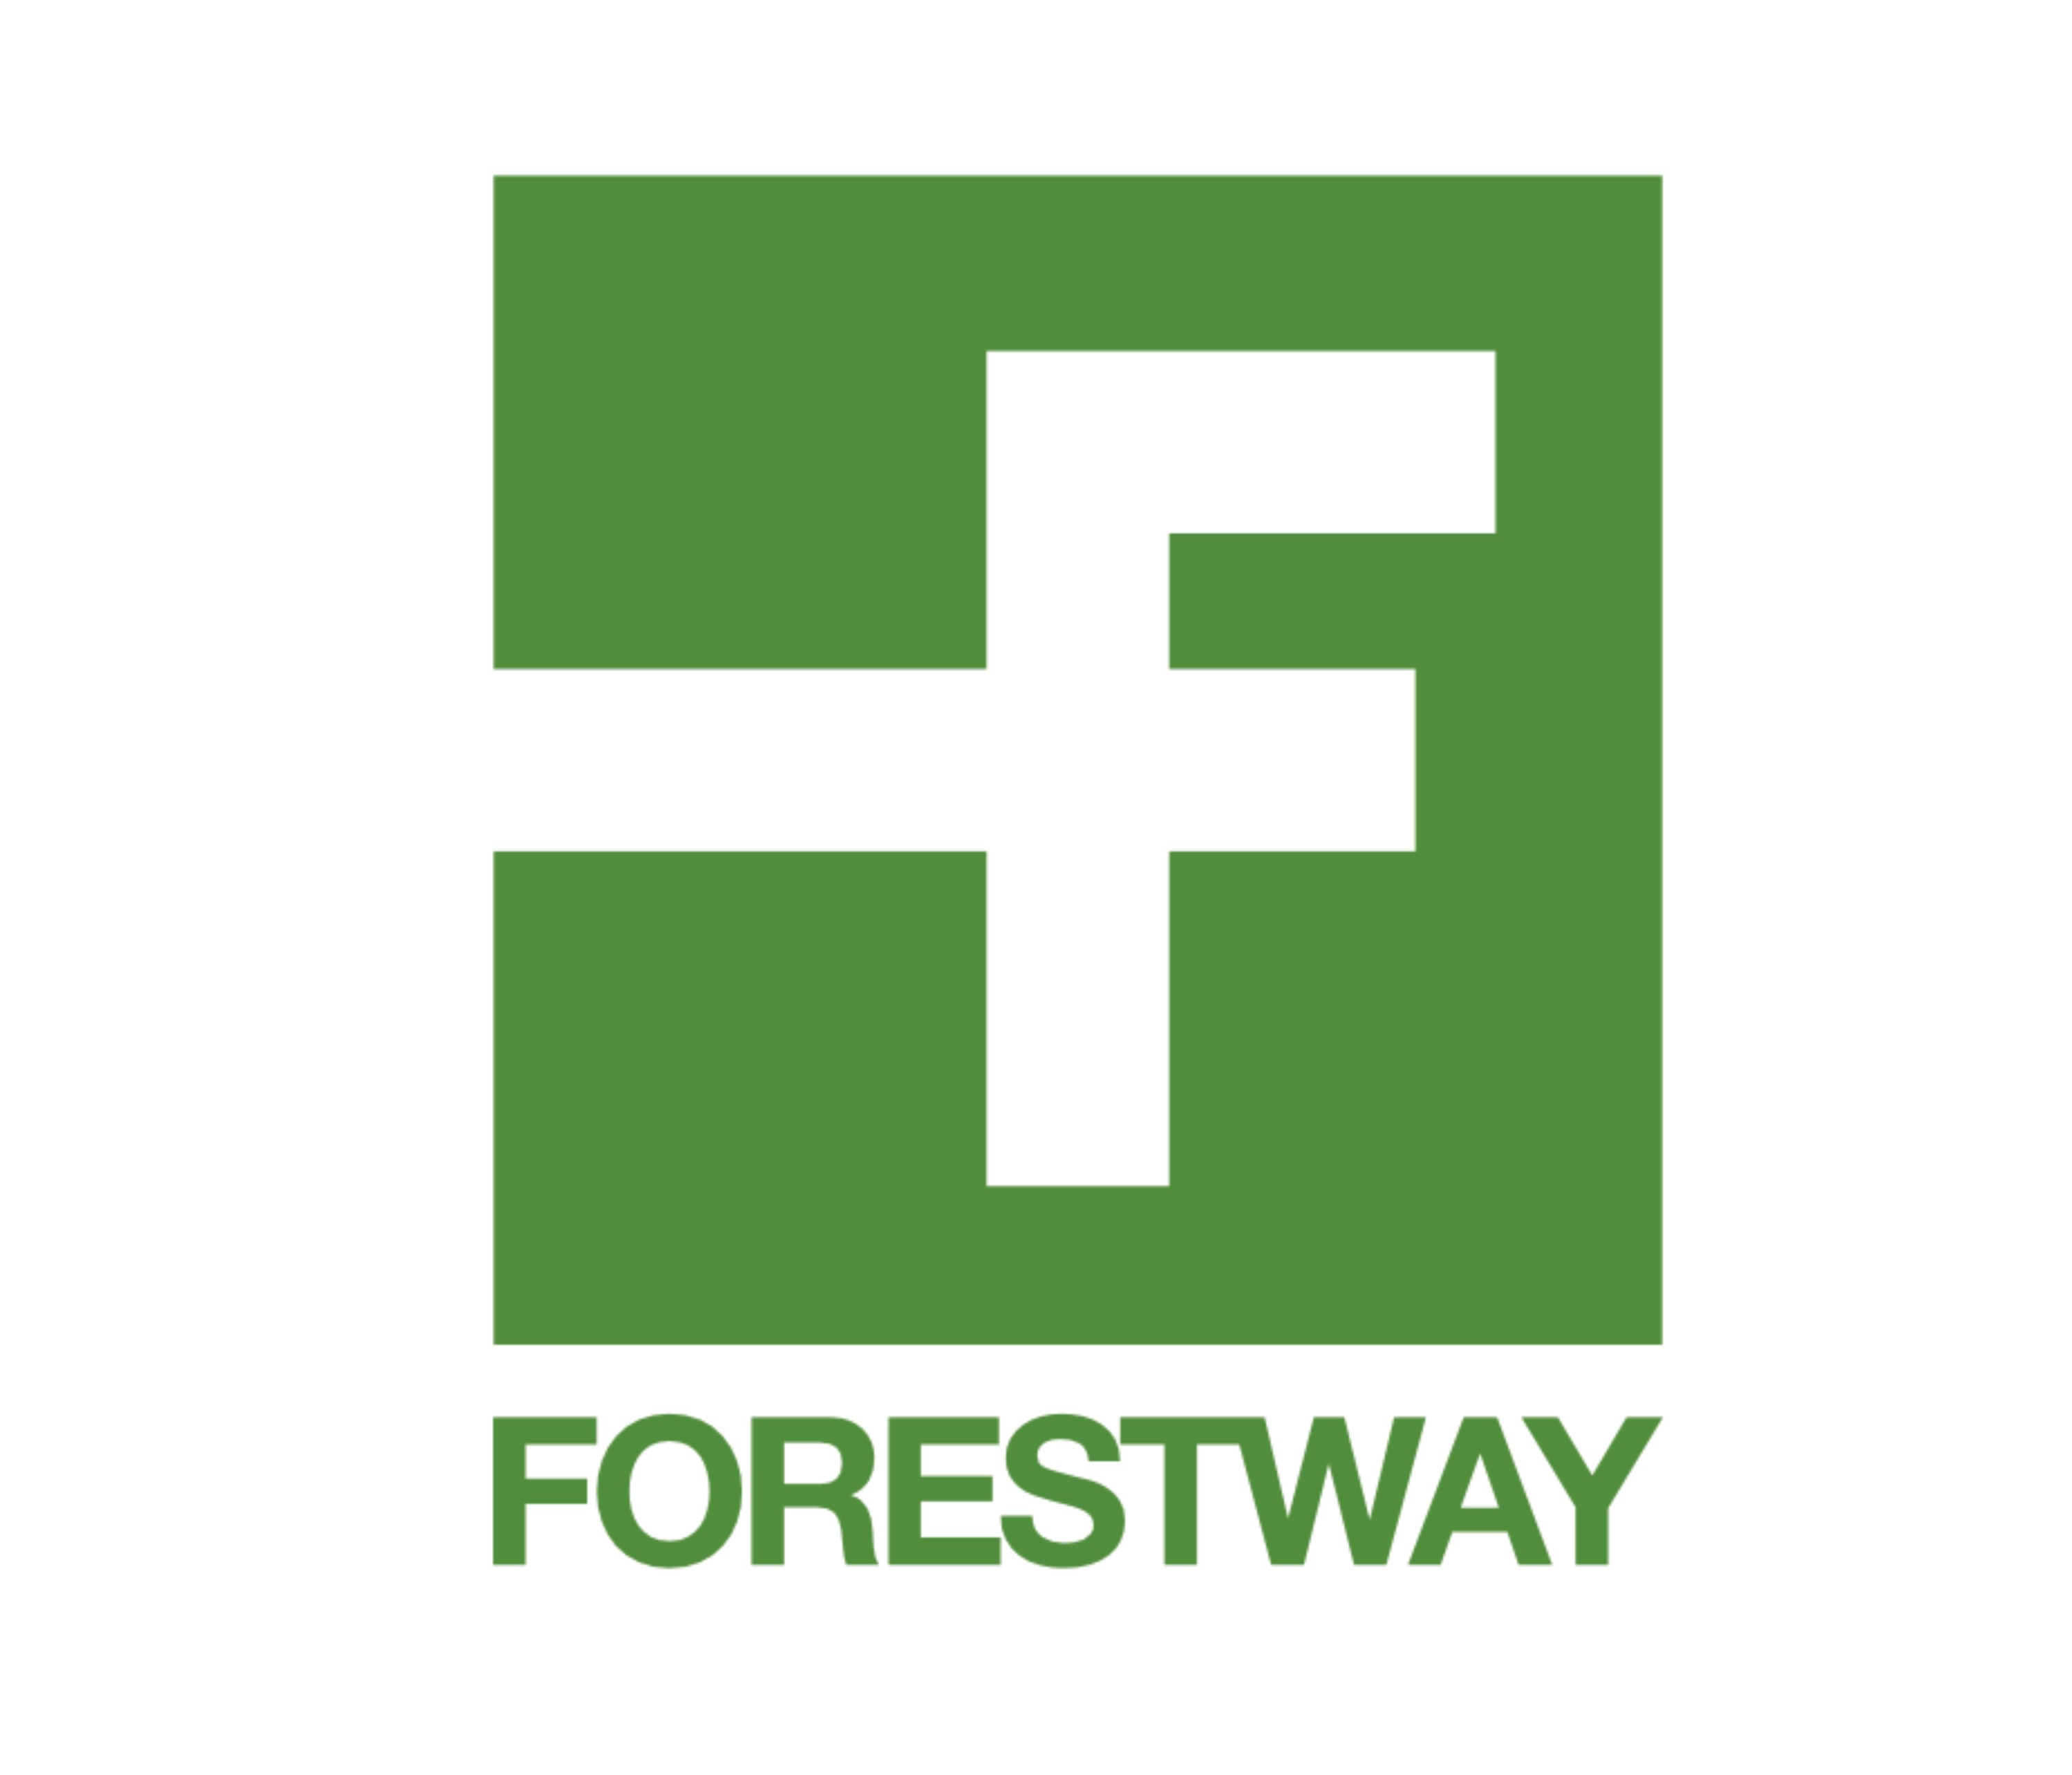 Forestway - Creating opportunities for people of all ages to engage in activities and adventures, that builds character and leadership skills, in a fun environment.